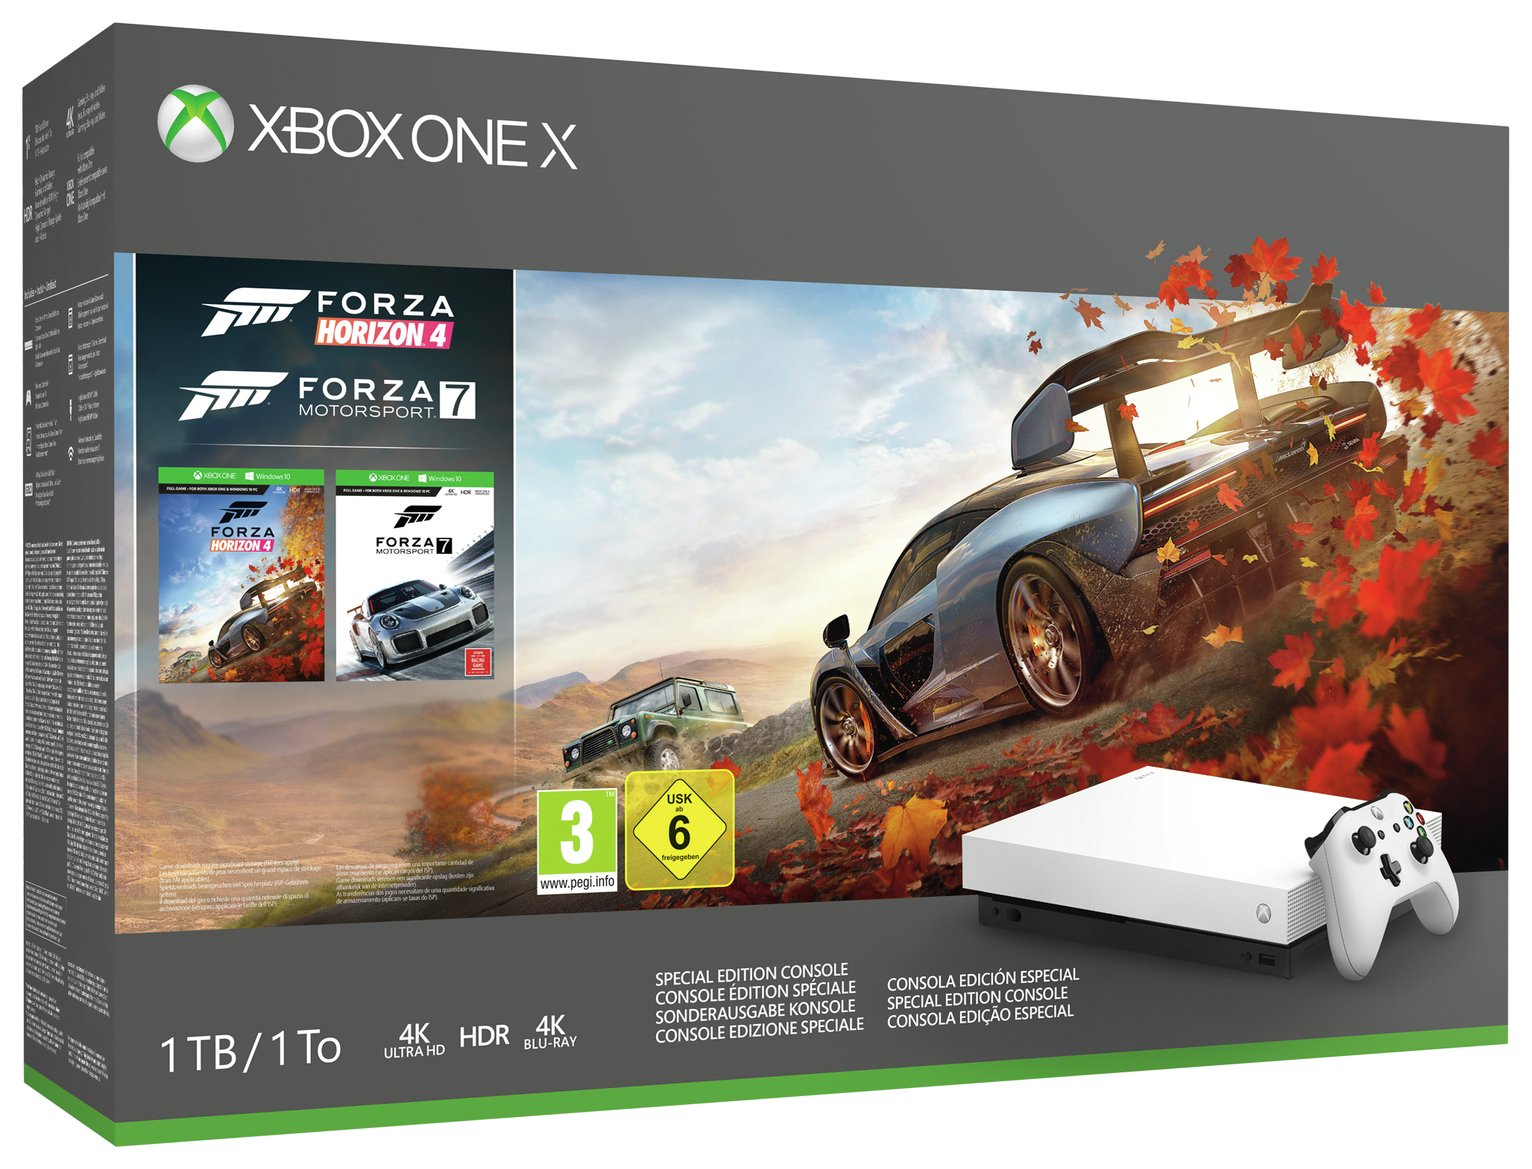 Xbox One X White 1TB Console & Forza Special Edition Bundle